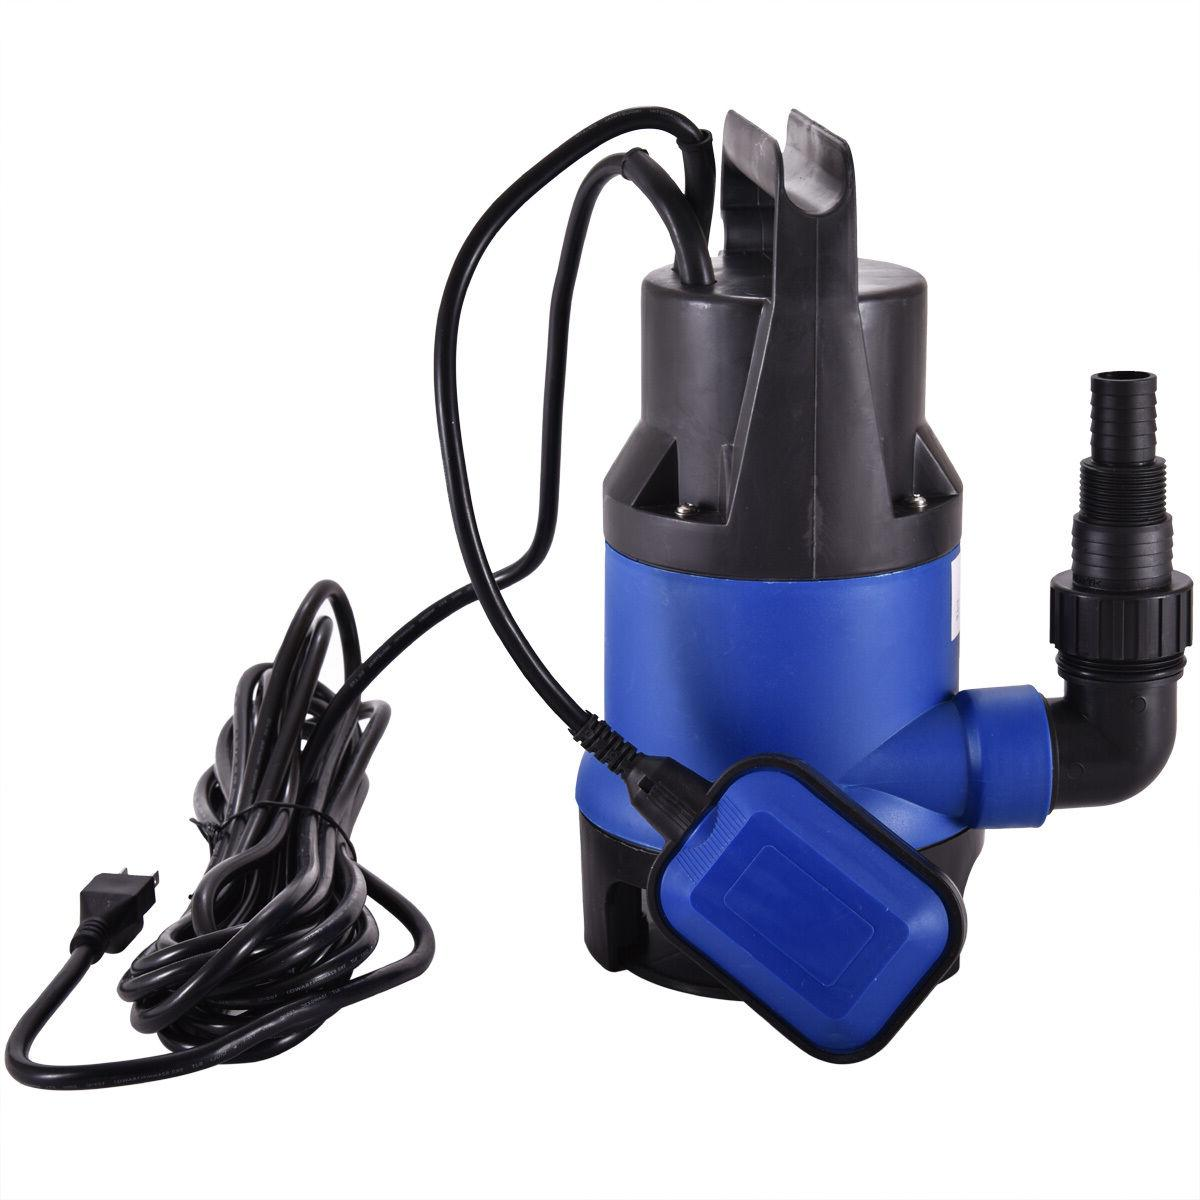 Submersible Pump HP Dirty Pool Drain